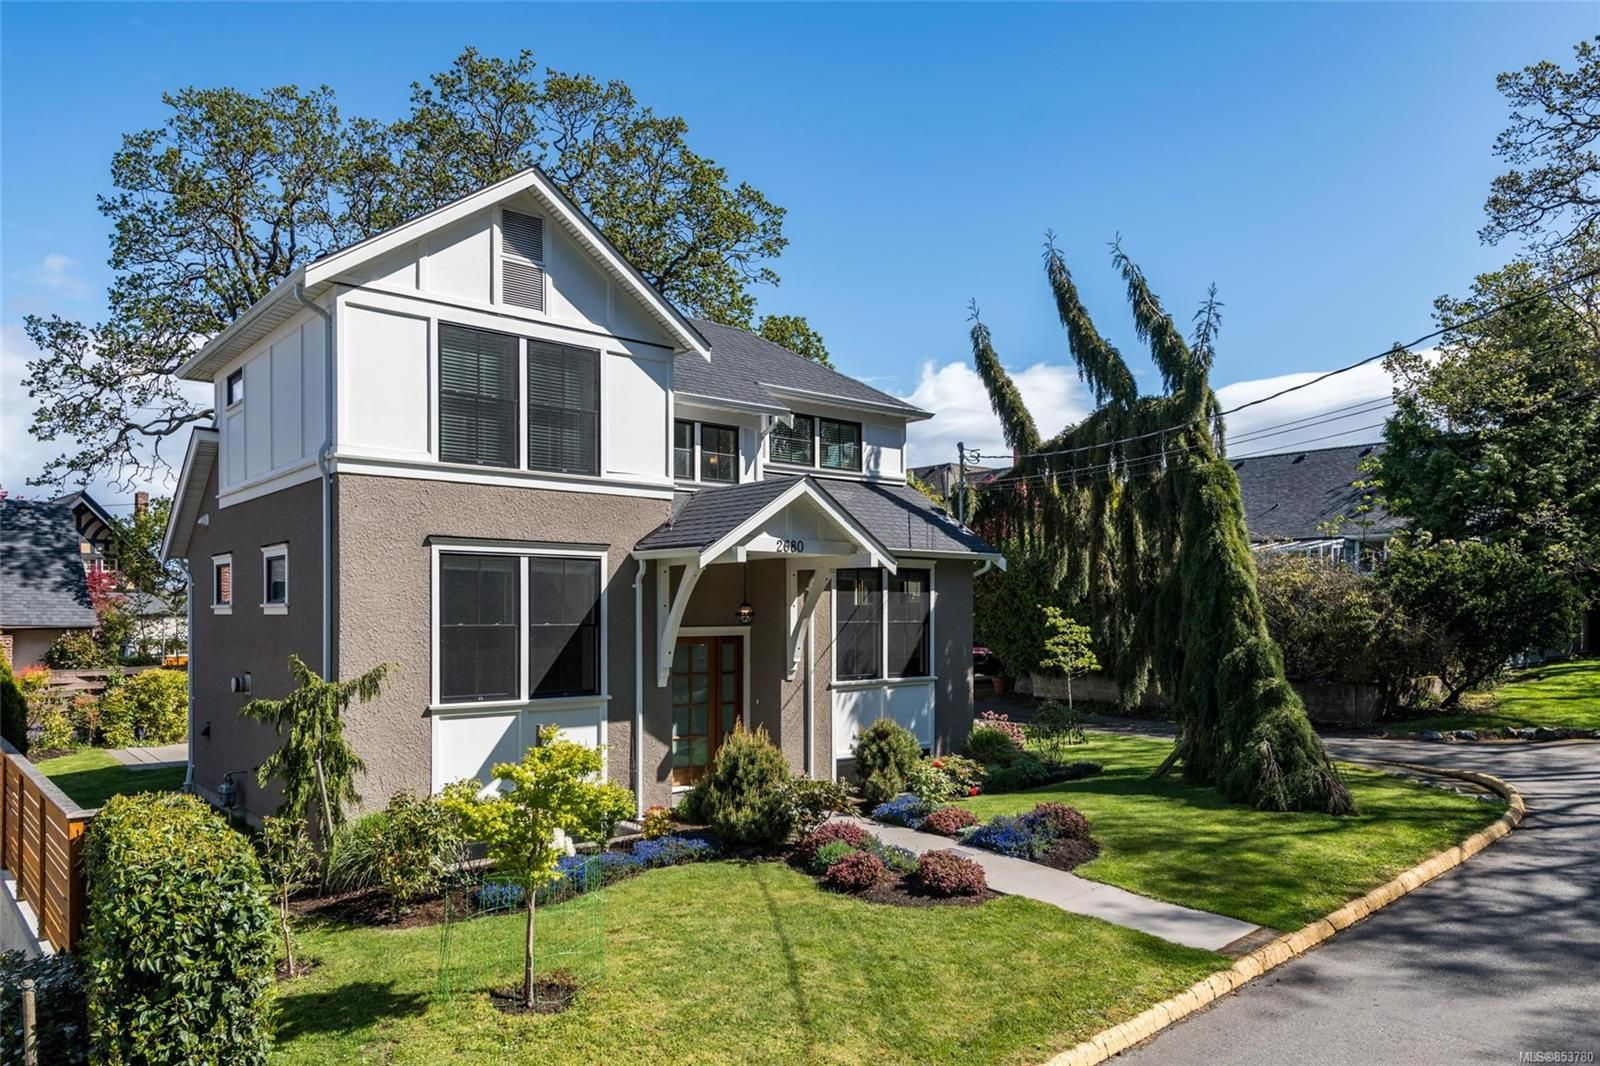 Main Photo: 2680 Margate Ave in : OB South Oak Bay House for sale (Oak Bay)  : MLS®# 853780